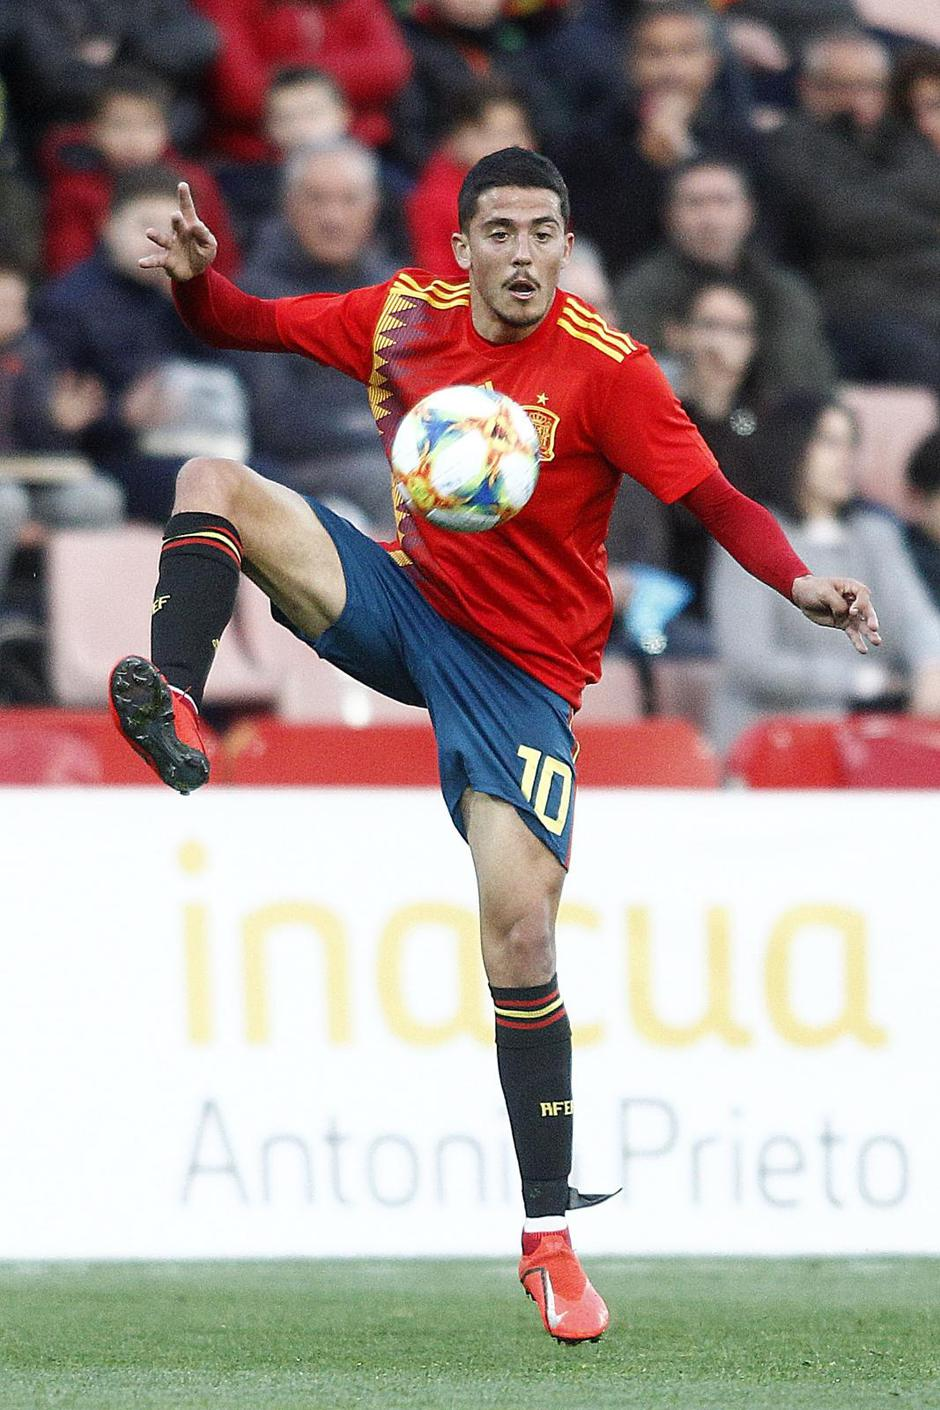 SPAIN V ROMANIA. INTERNATIONAL FRIENDLY MATCH. NATIONAL UNDER-21 | Autor: nph/NordPhoto/PIXSELLNordPhoto/PIXSELL